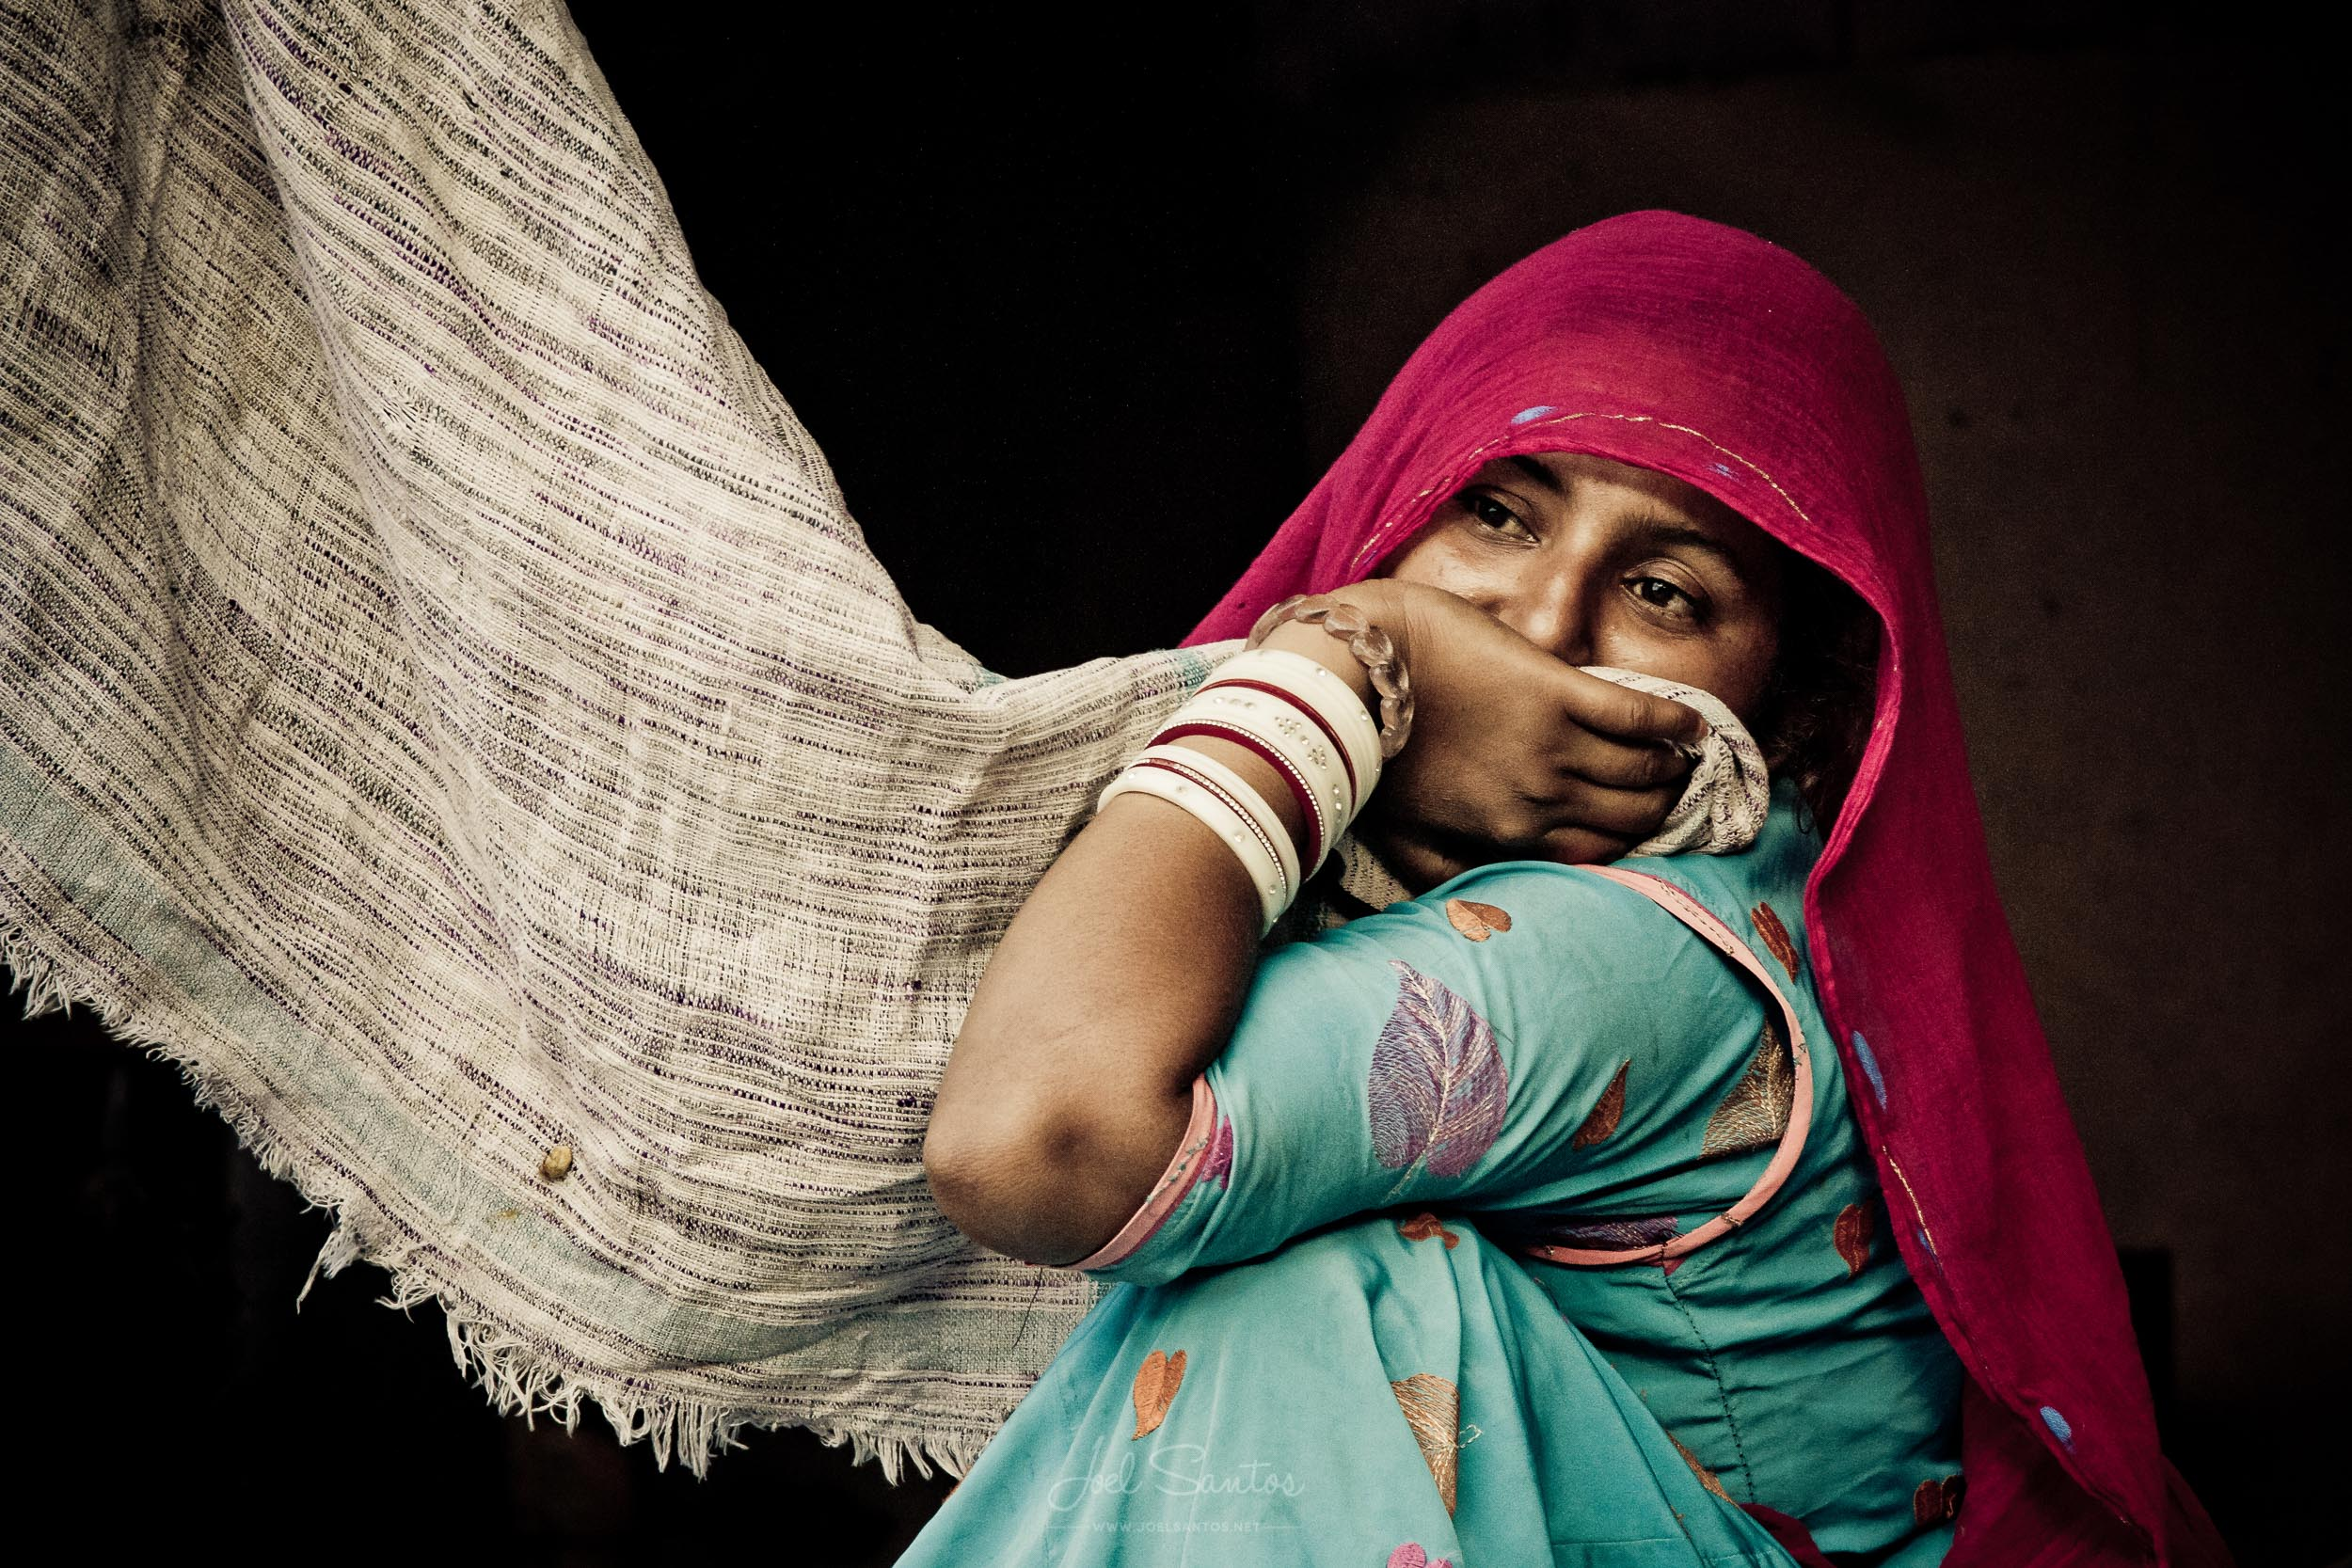 Woman, Udaipur, India